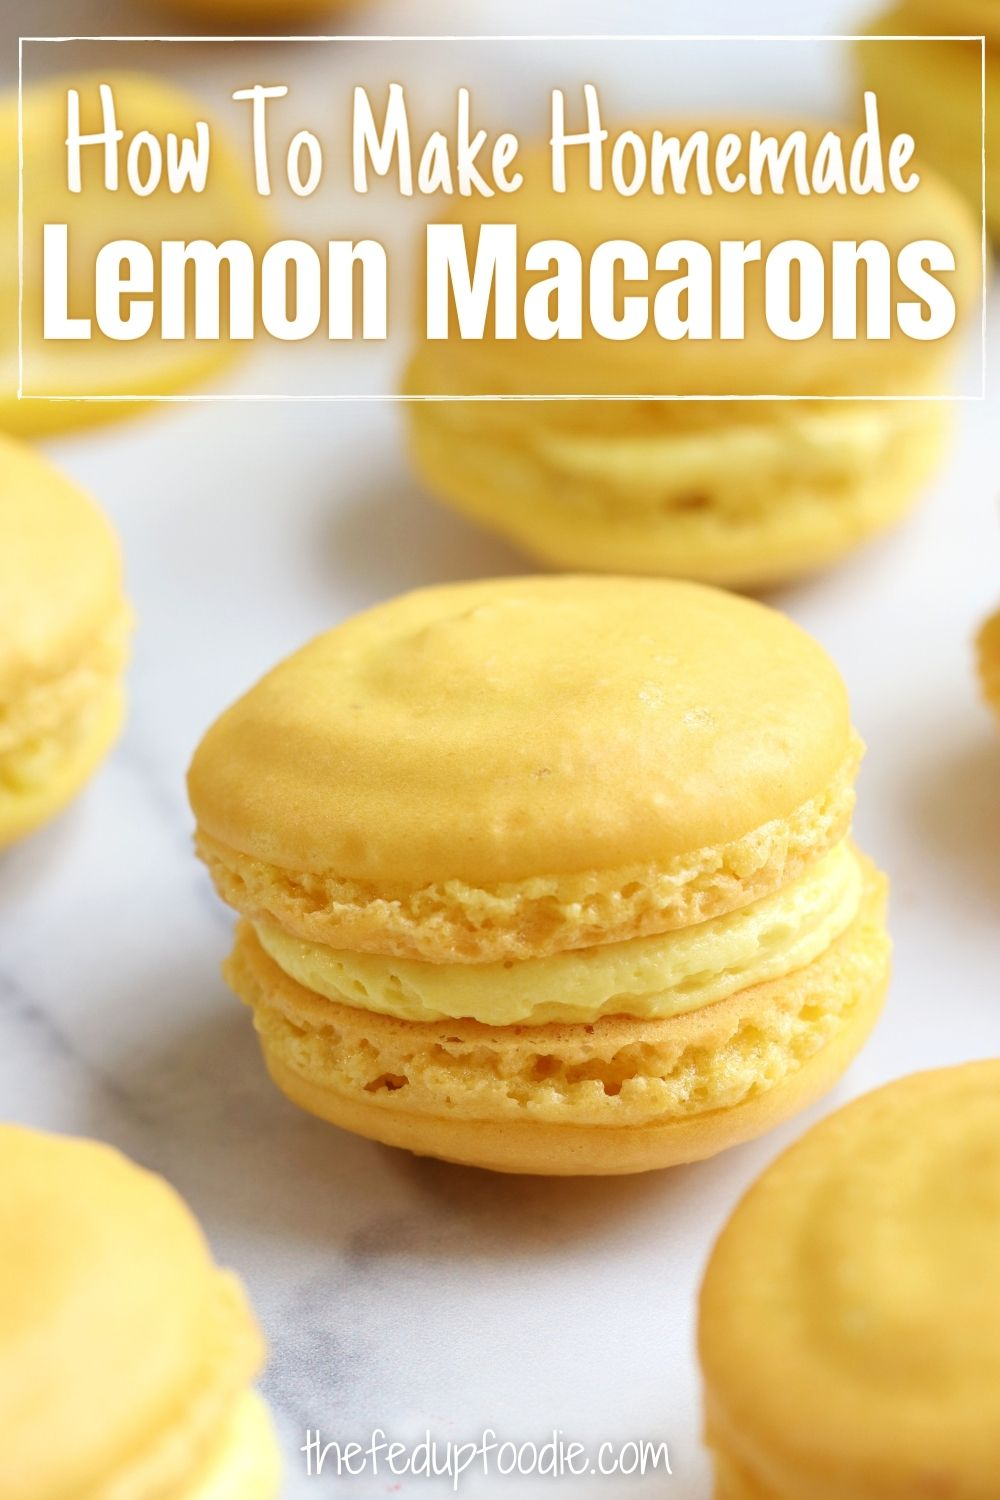 Lemon Macarons Recipe creates light and delicate textured cookies. These French style cookies are bursting with lemon flavor and have an irresistible filling combination of lemon buttercream and lemon curd or lemon buttercream and raspberry jam. The perfect cookie for baby showers, bridal showers or as a treat for lemon lovers. #LemonMacarons #LemonMacaronRecipe #LemonMacaronFilling #LemonMacaronsWithLemonCurd #HowToMakeMacaroons #HowToMakeMacarons #FrenchMacarons #MacaronsForBeginners